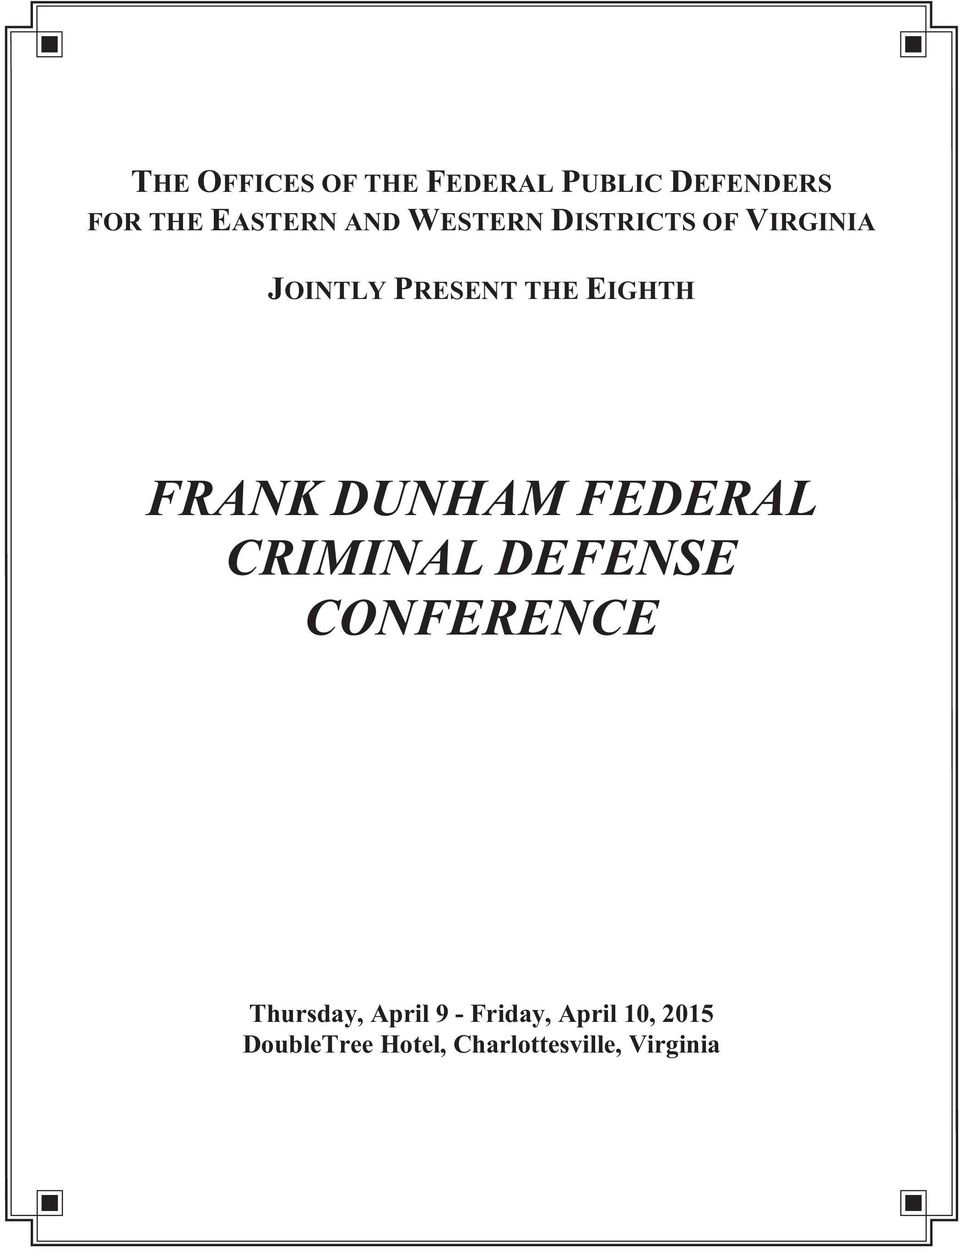 DUNHAM FEDERAL CRIMINAL DEFENSE CONFERENCE Thursday, April 9 -